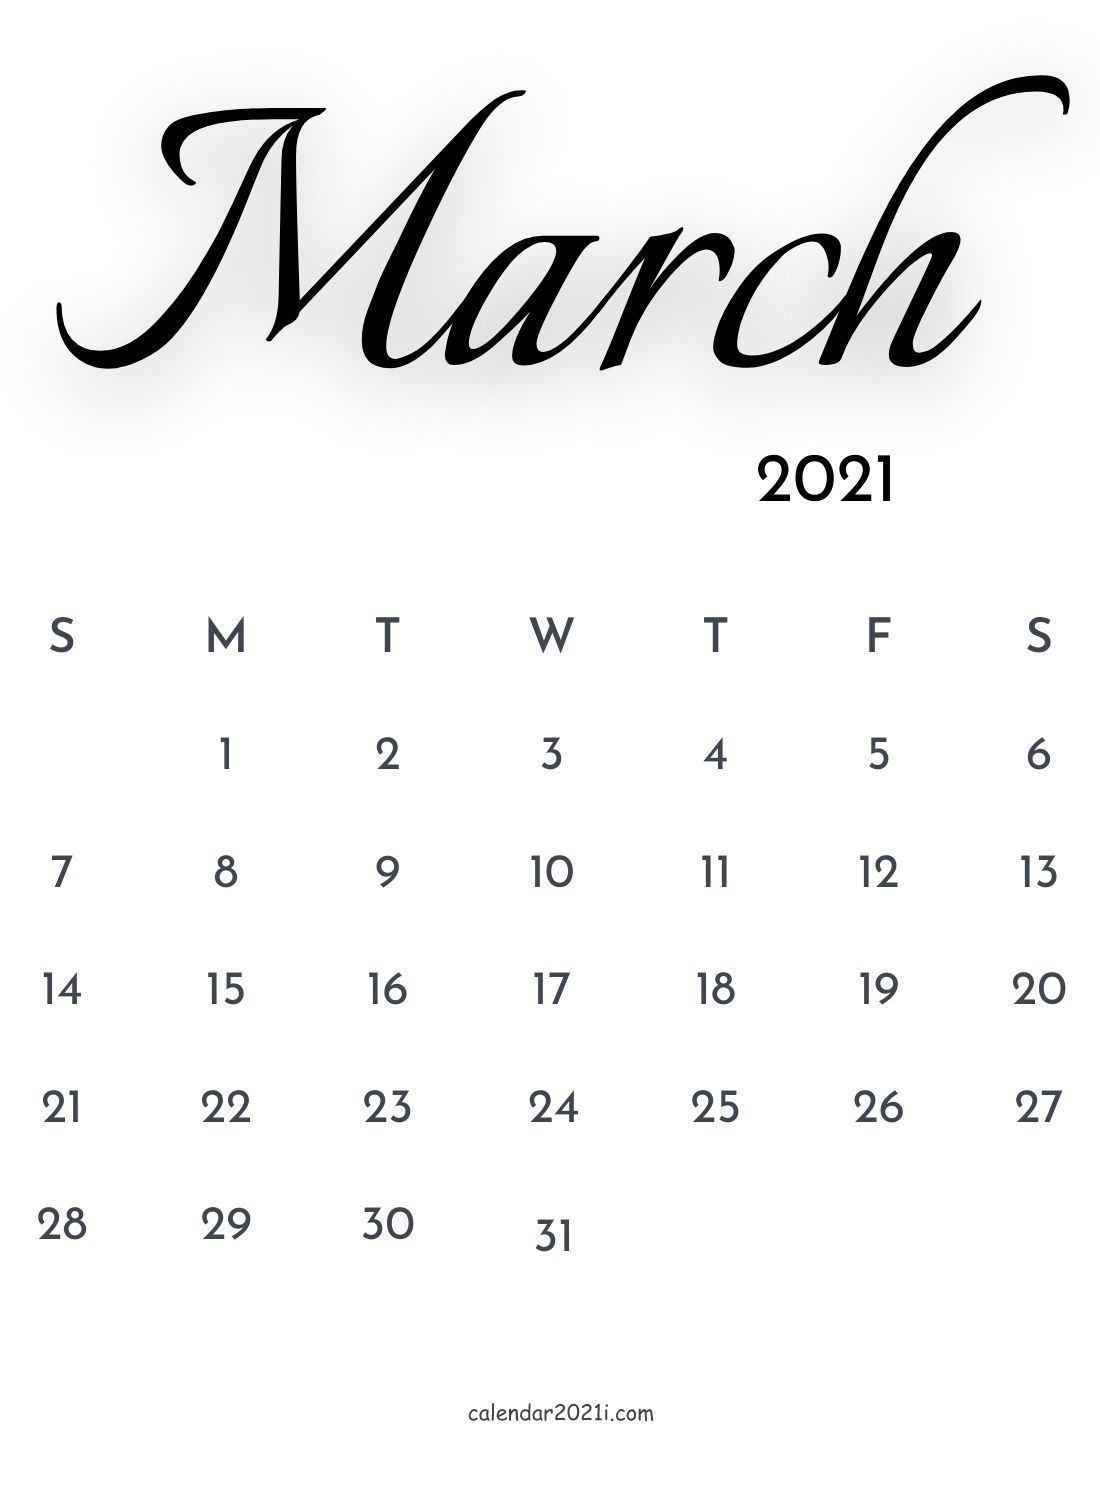 March 2021 Calligraphy Calendar Printable Template Free